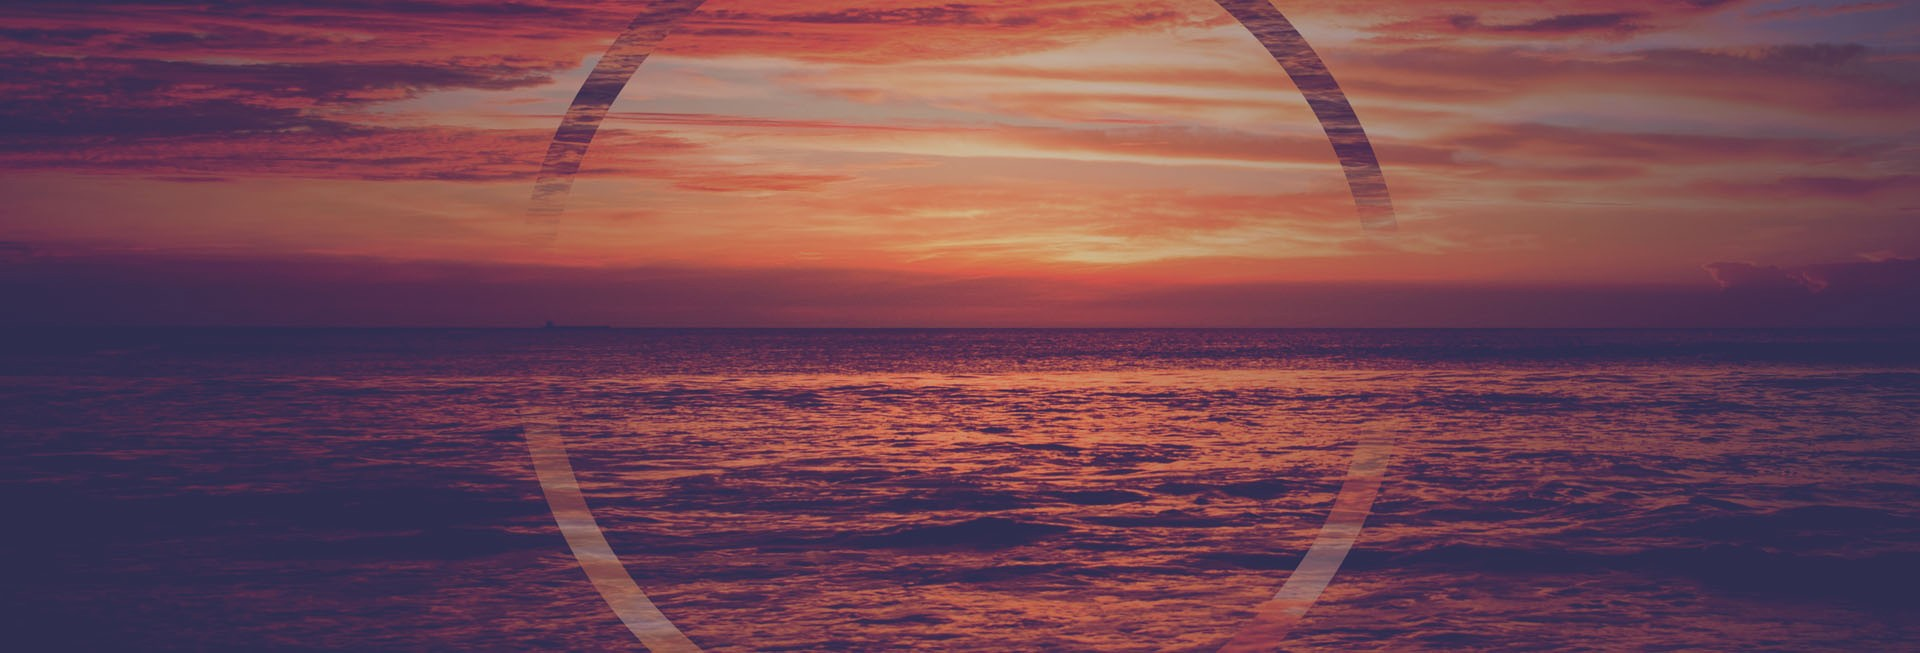 Glory of God Ocean Sunset Website Banner